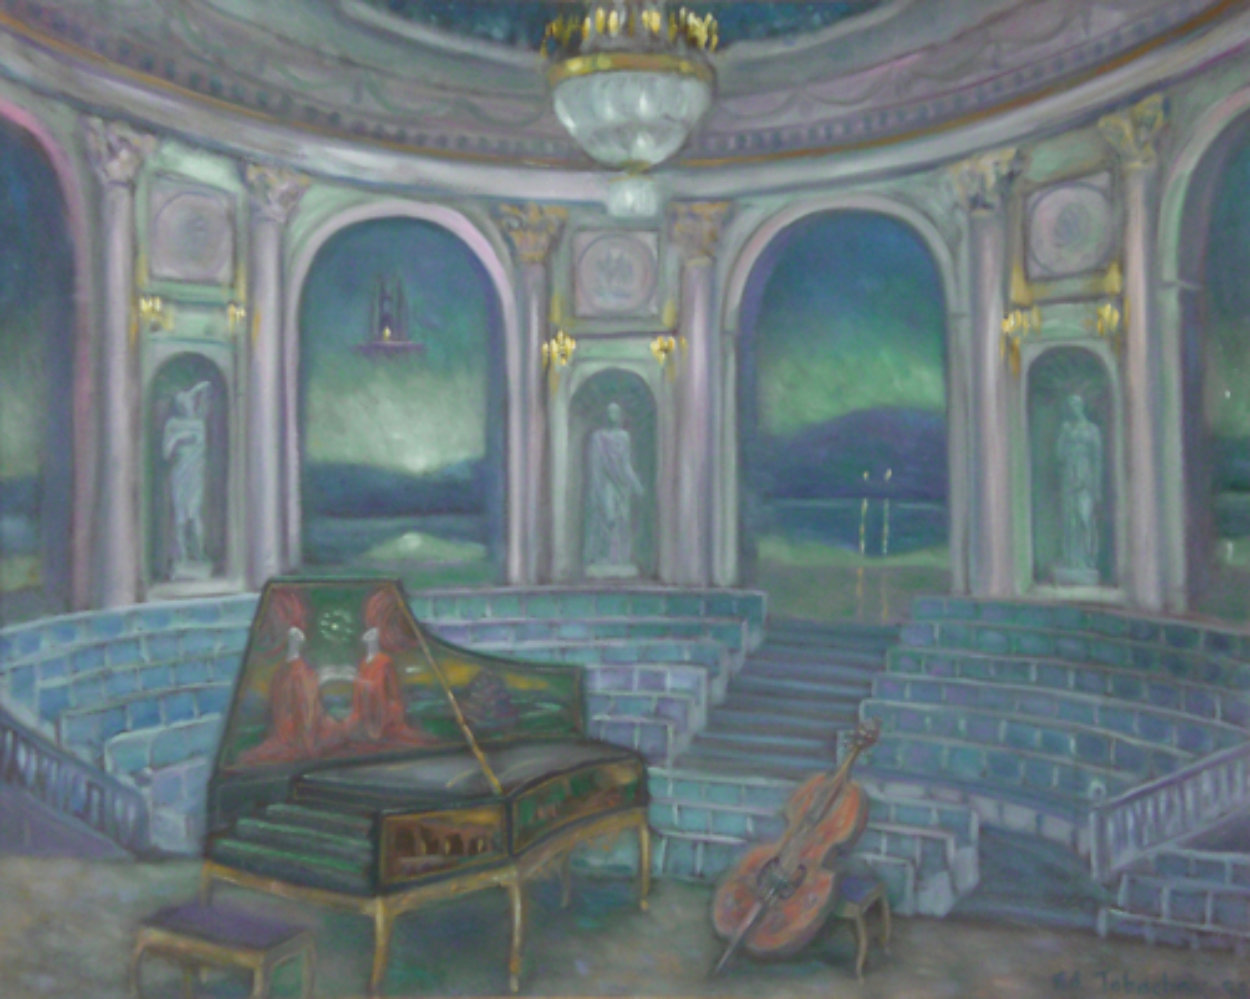 Concert in Hermitage Theater 31x40 Original Painting by Edward Tabachnik